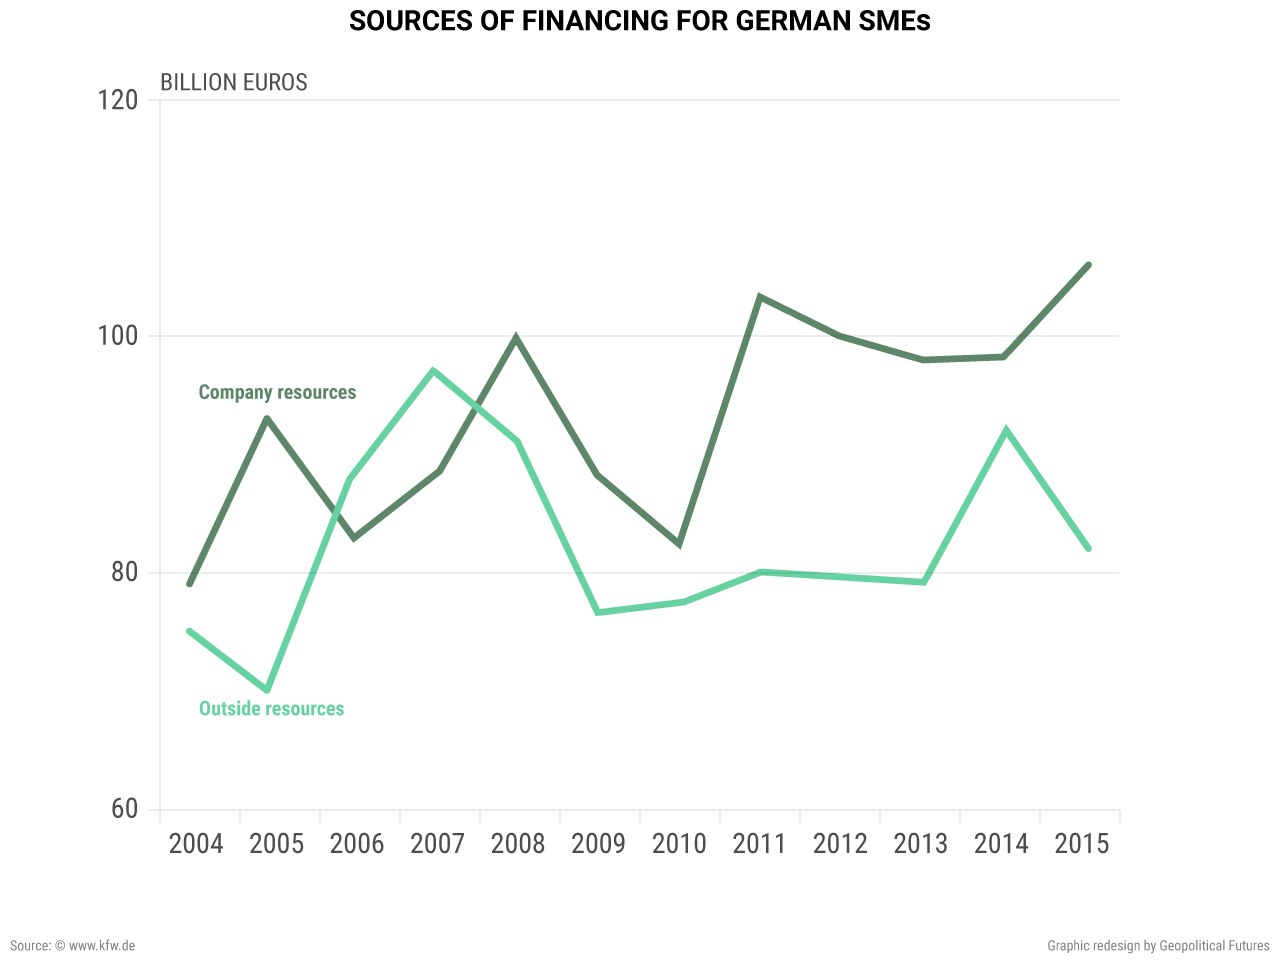 Sources of Financing for German SMEs